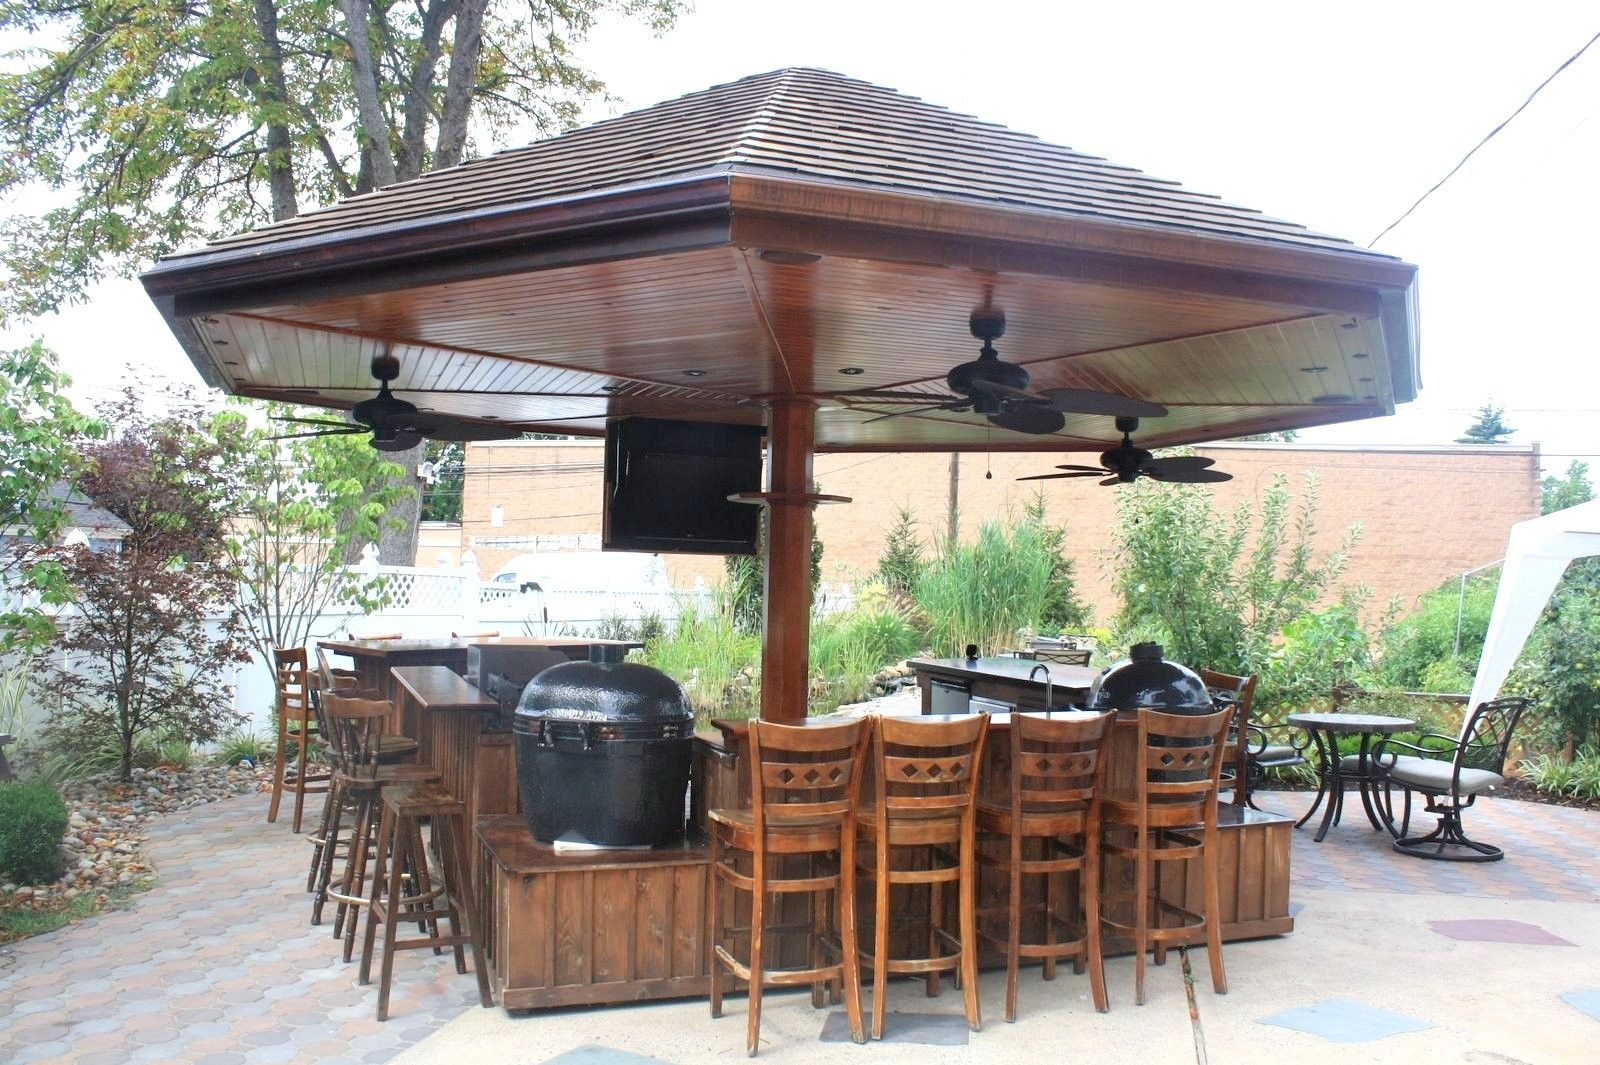 Outdoor bar handmade primo grill outdoor kitchen and bar for Outdoor kitchen cabinets plans